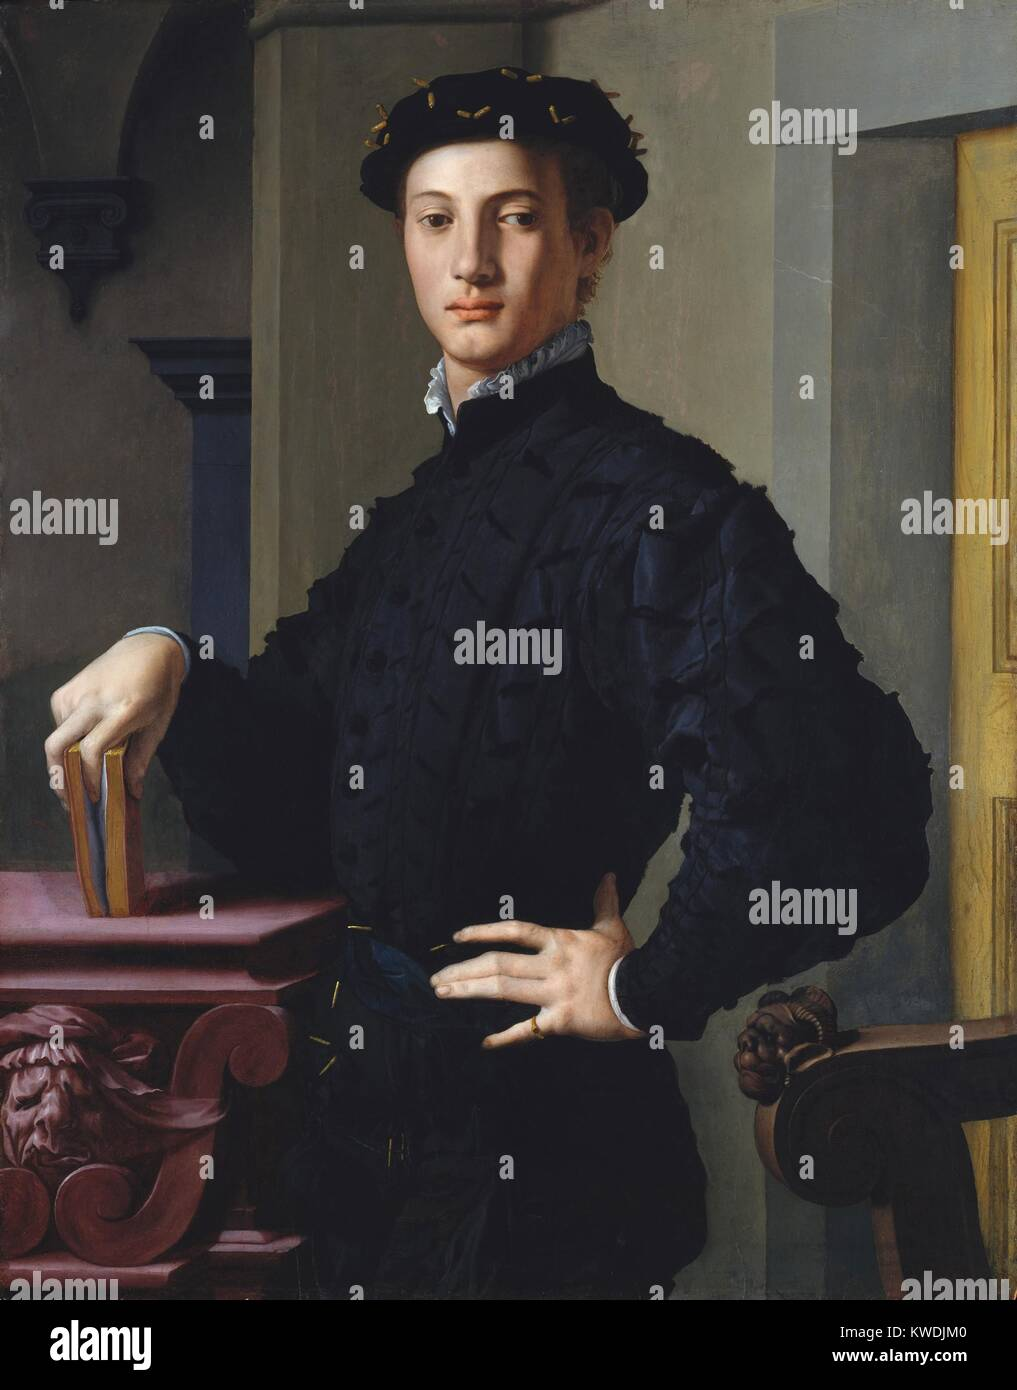 PORTRAIT OF A YOUNG MAN, by Bronzino, 1530s, Italian Renaissance painting, oil on wood. The sitter is thought to - Stock Image